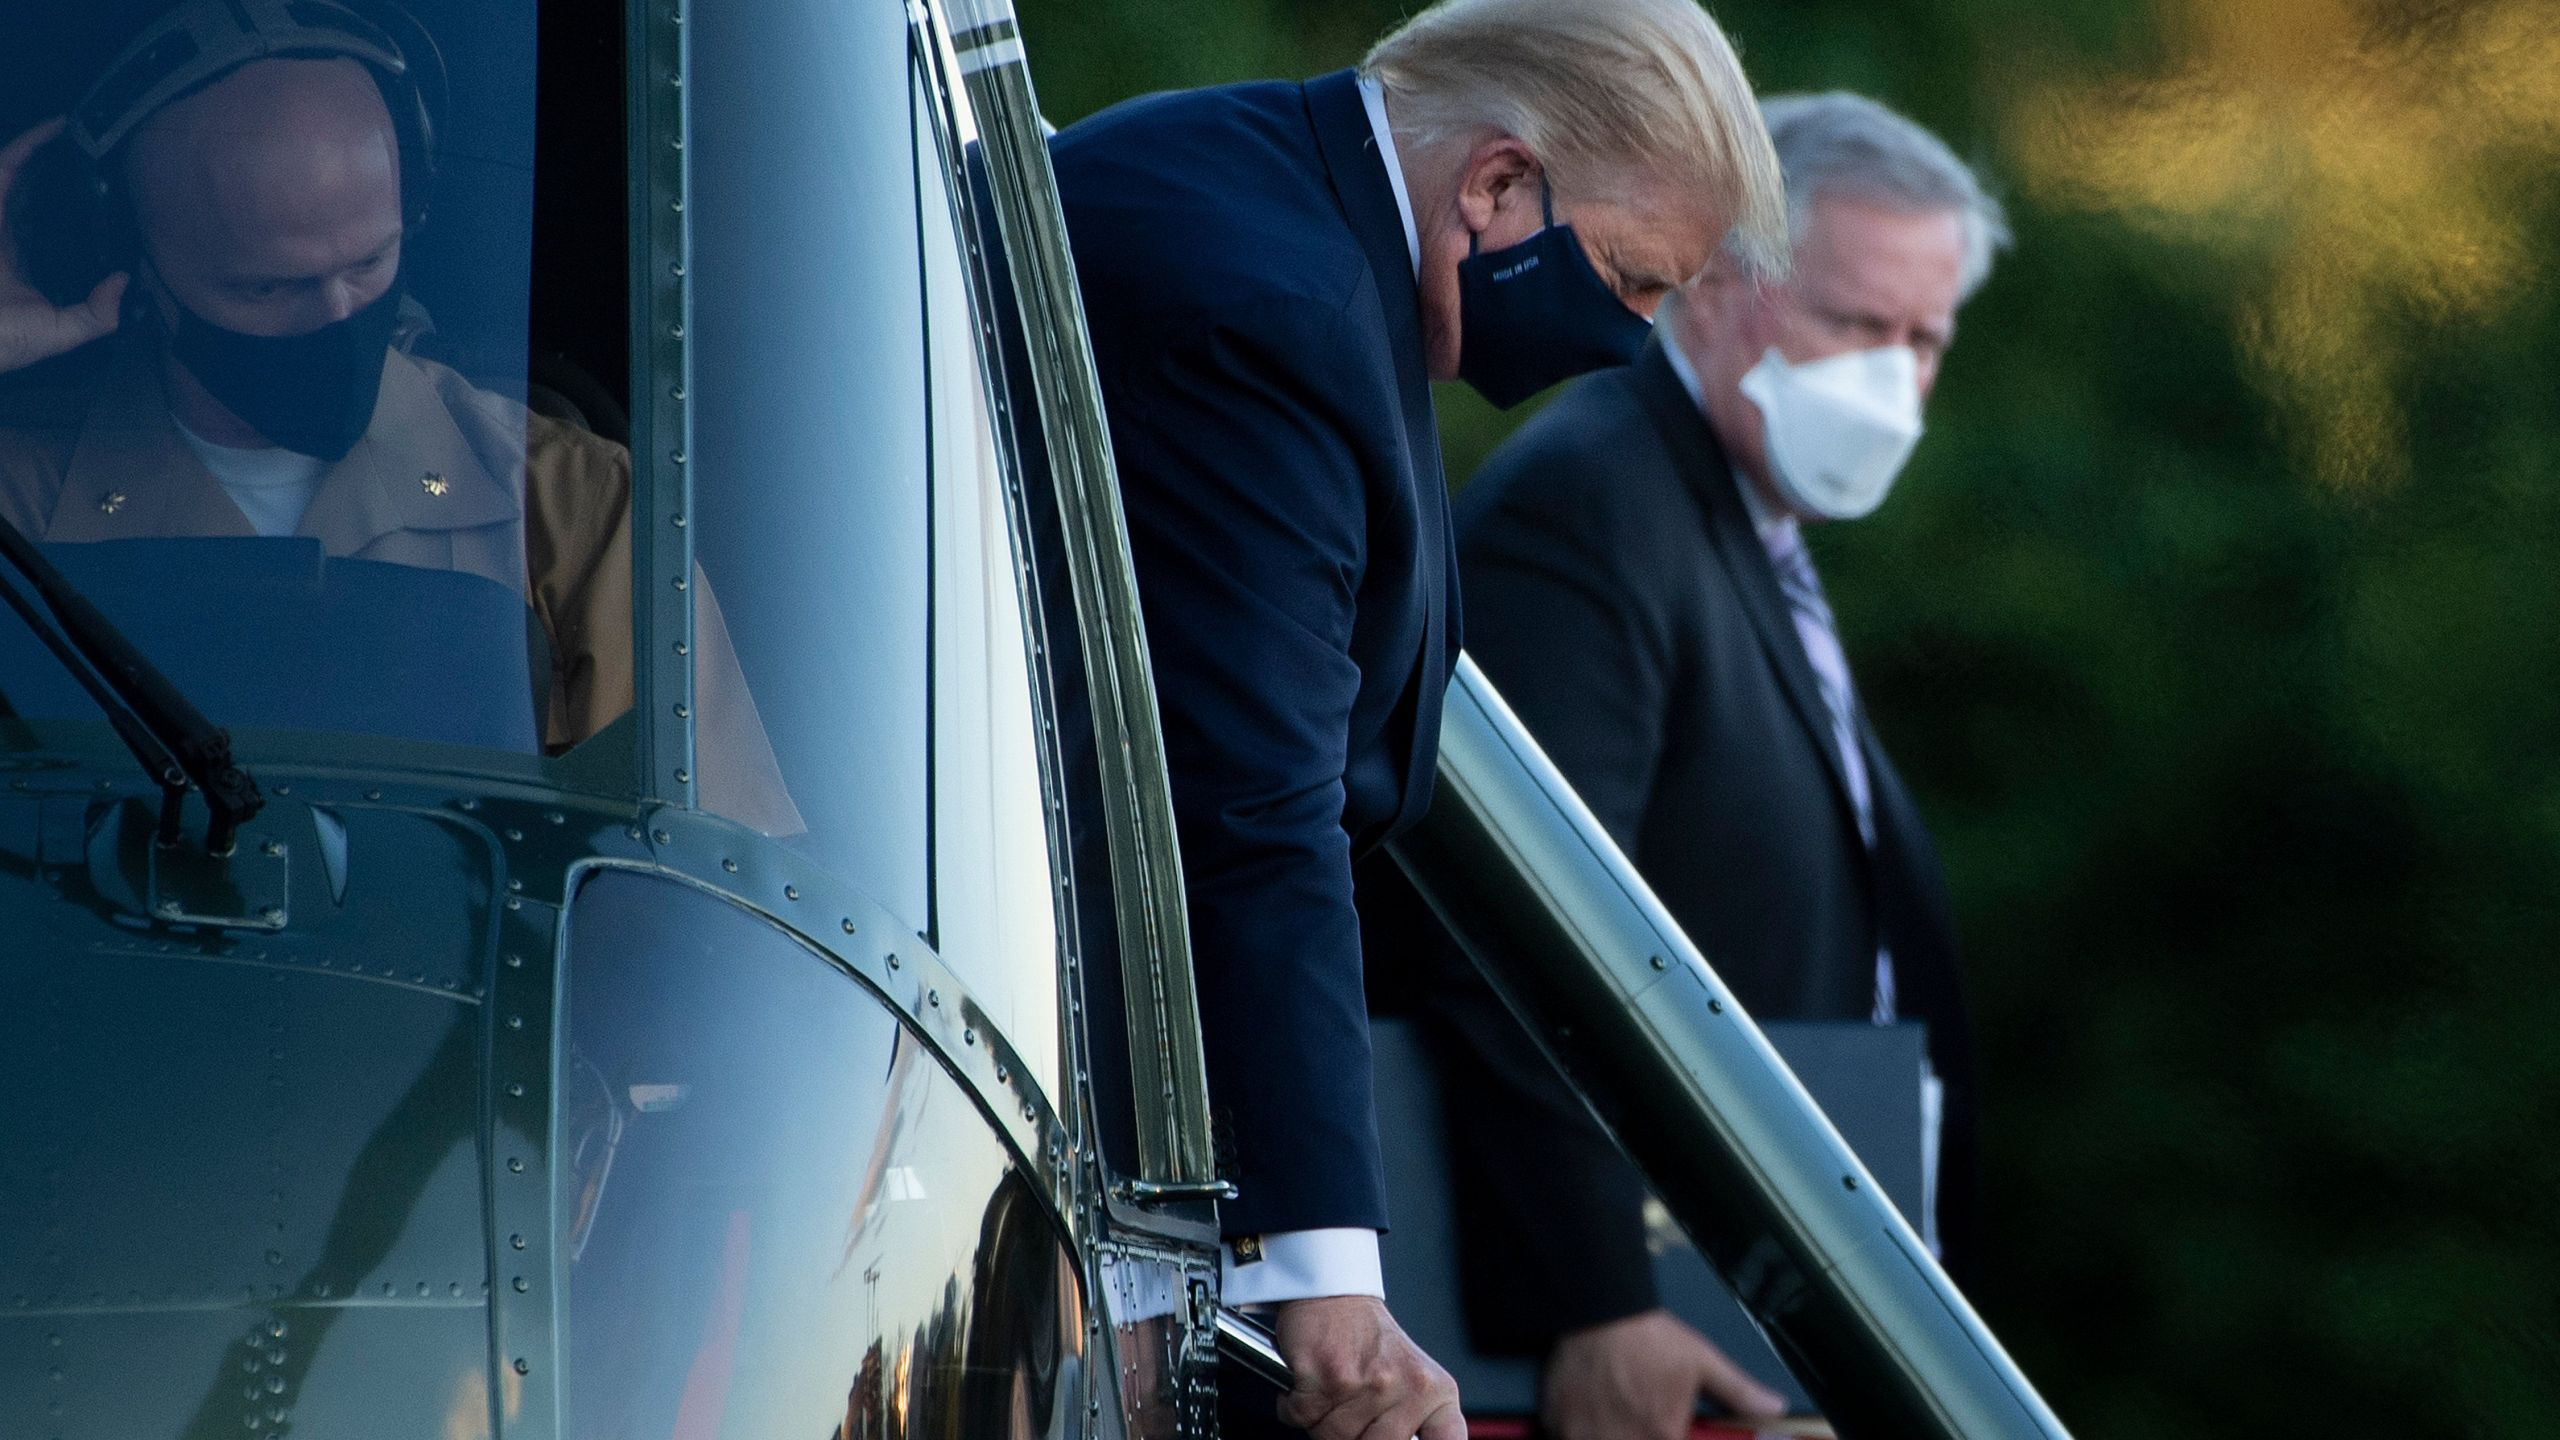 White House Chief of Staff Mark Meadows (R) watches as US President Donald Trump walks off Marine One while arriving at Walter Reed Medical Center in Bethesda, Maryland on Oct. 2, 2020. (BRENDAN SMIALOWSKI/AFP via Getty Images)